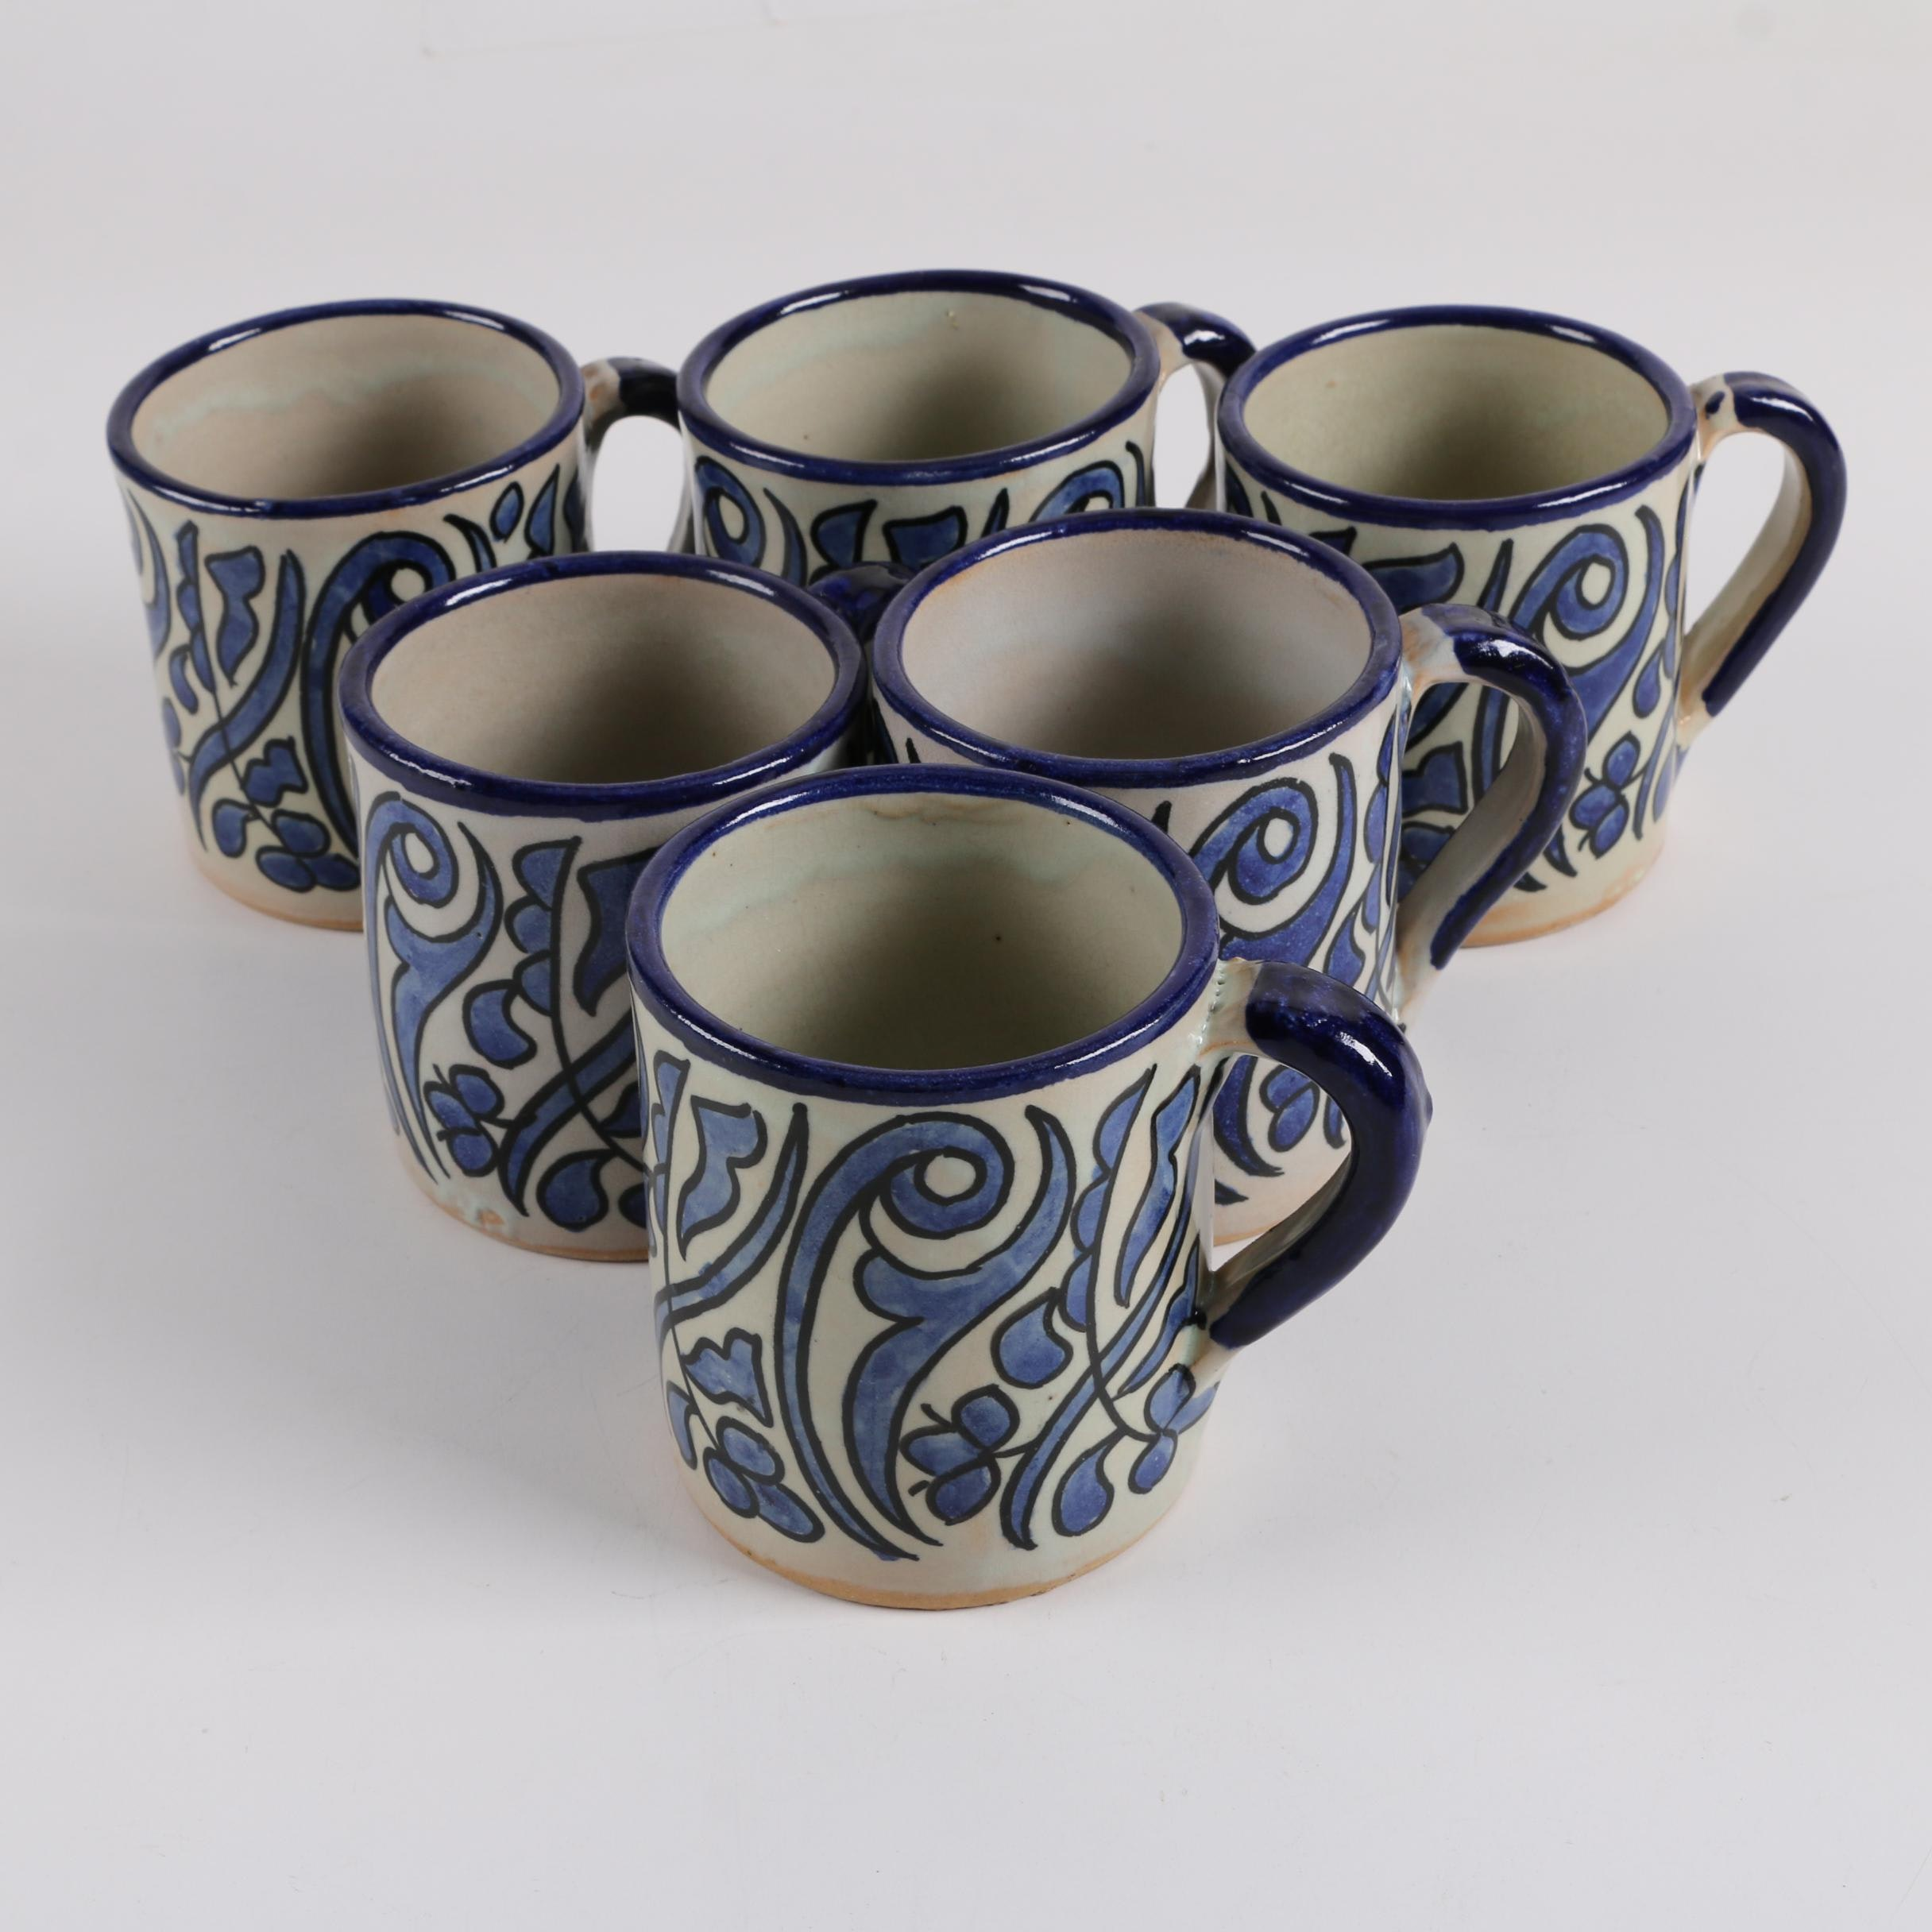 Moroccan Hand-Painted Ceramic Mugs